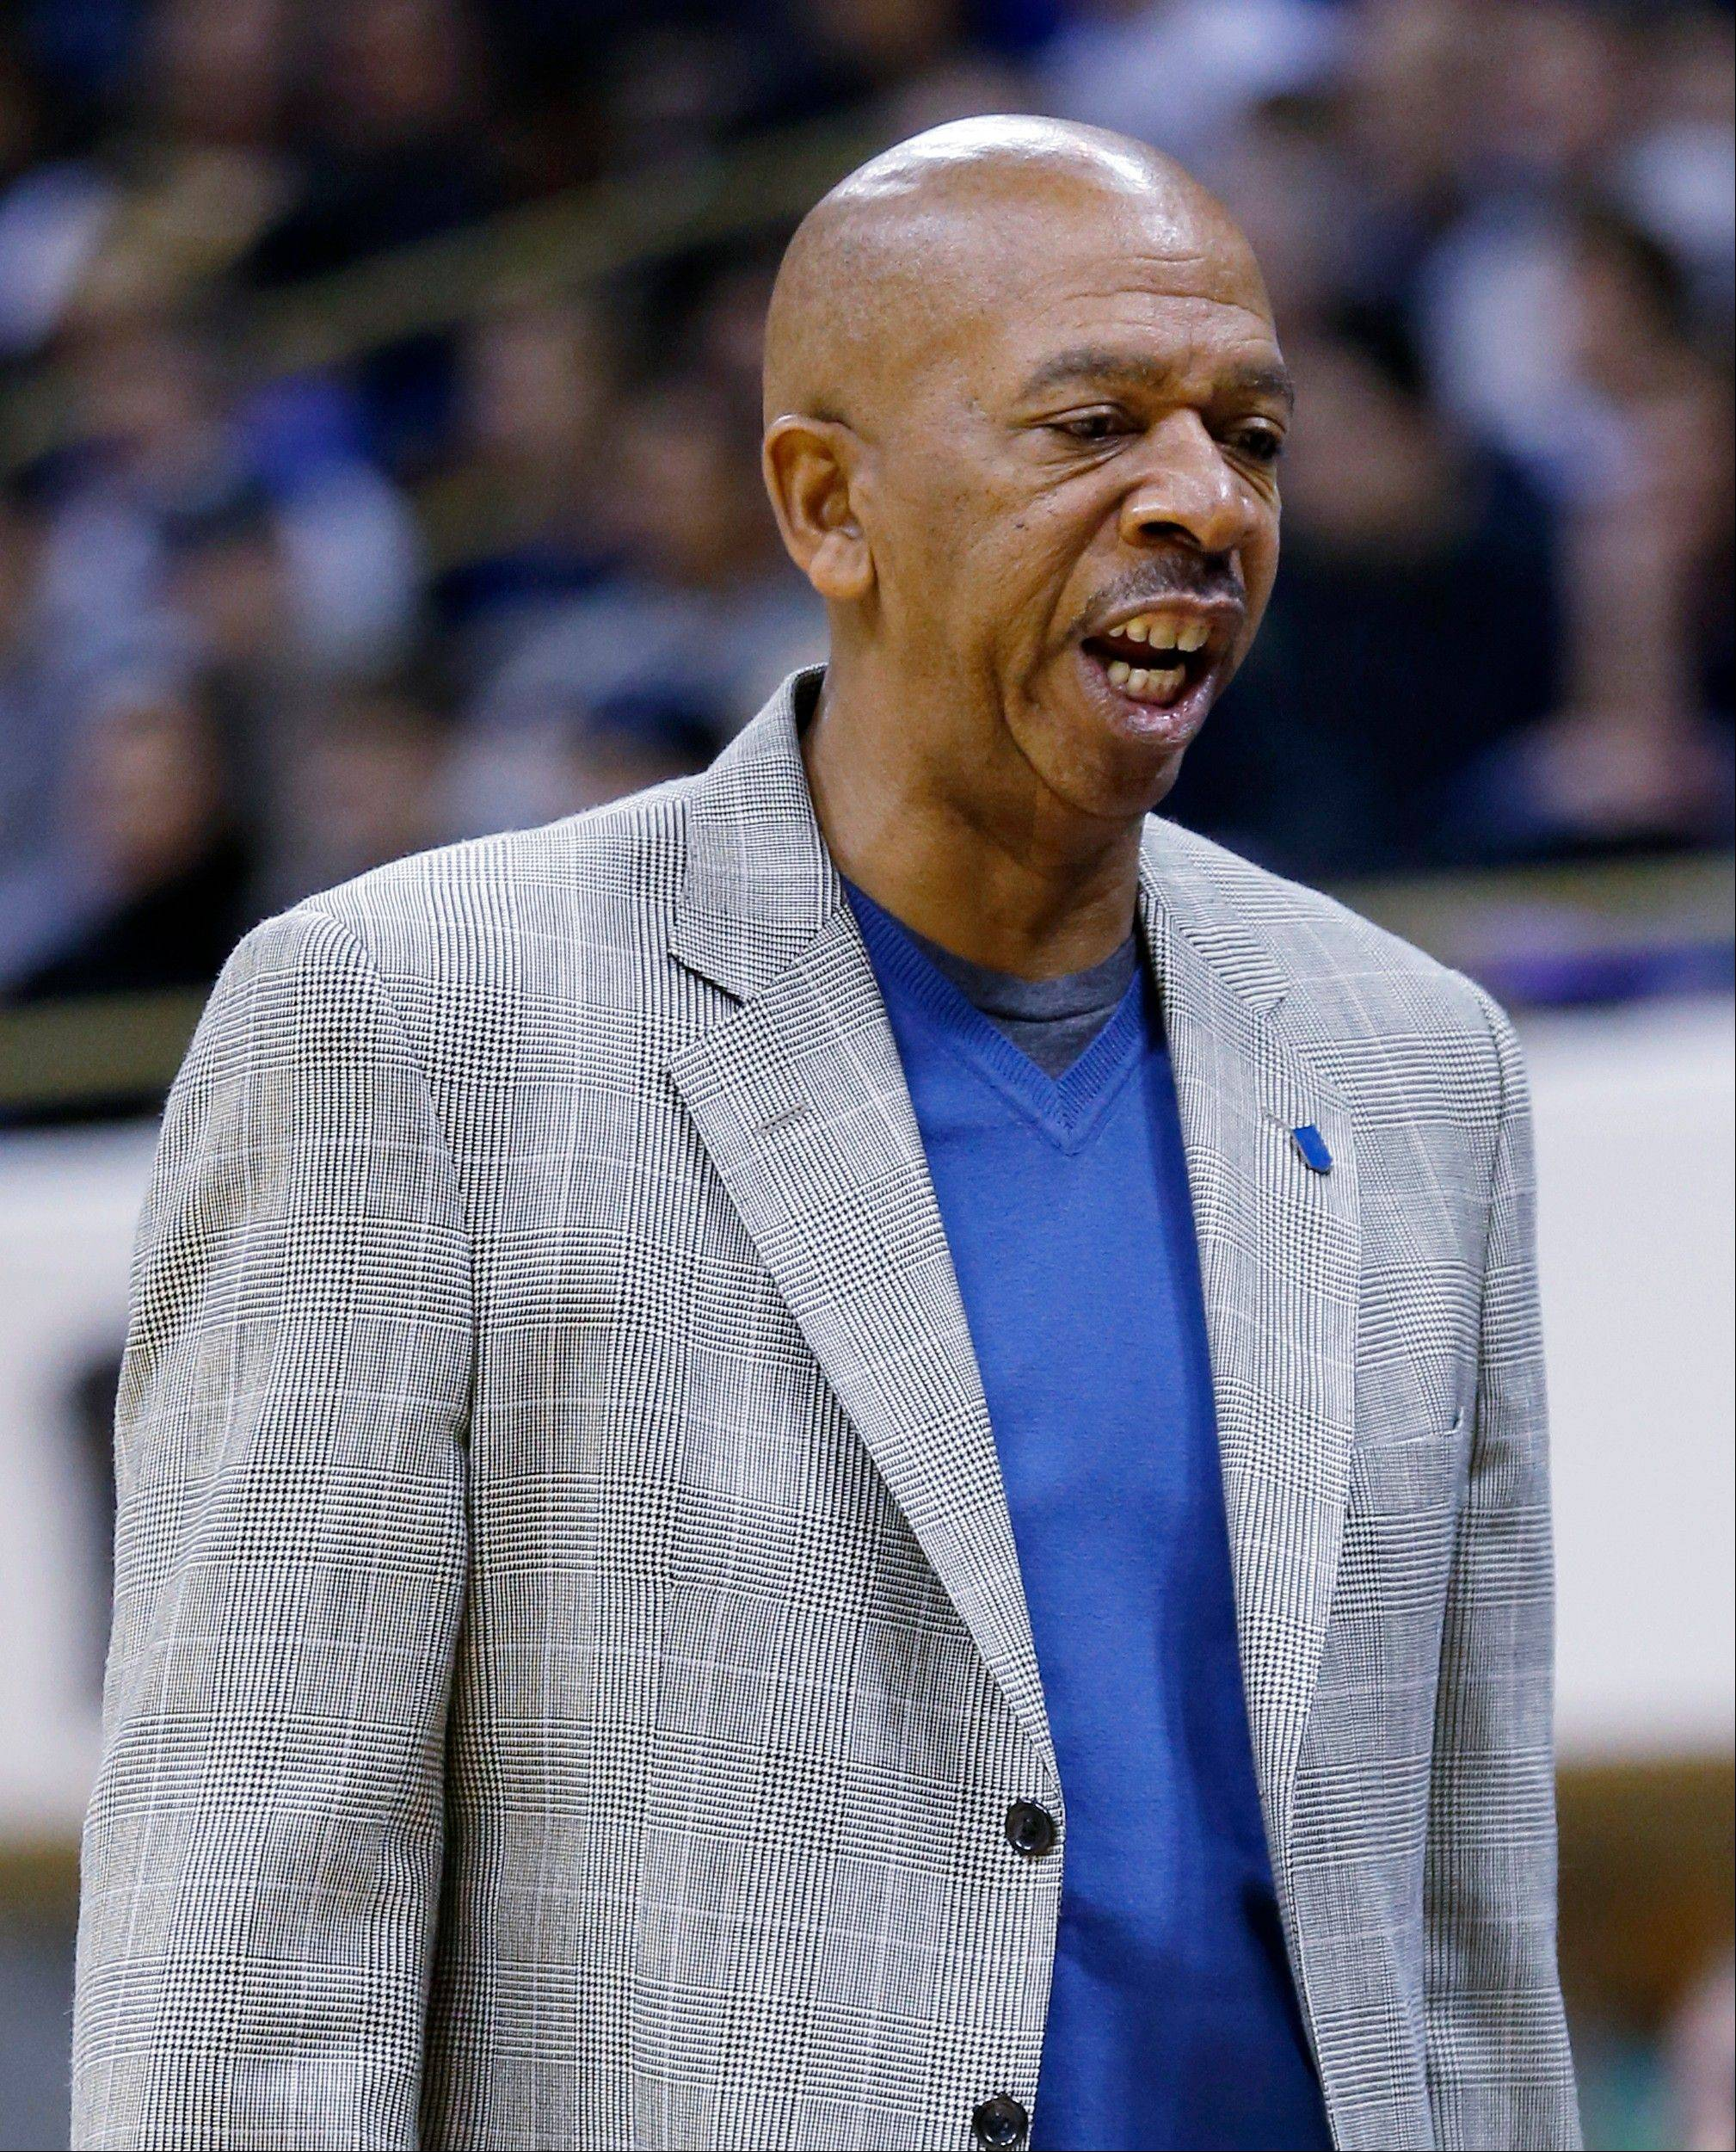 DePaul head coach Oliver Purnell talks to his team in the first half of the NCAA college basketball game against Pittsburgh on Saturday, Jan. 26, 2013 in Pittsburgh. Pittsburgh won 93-55.